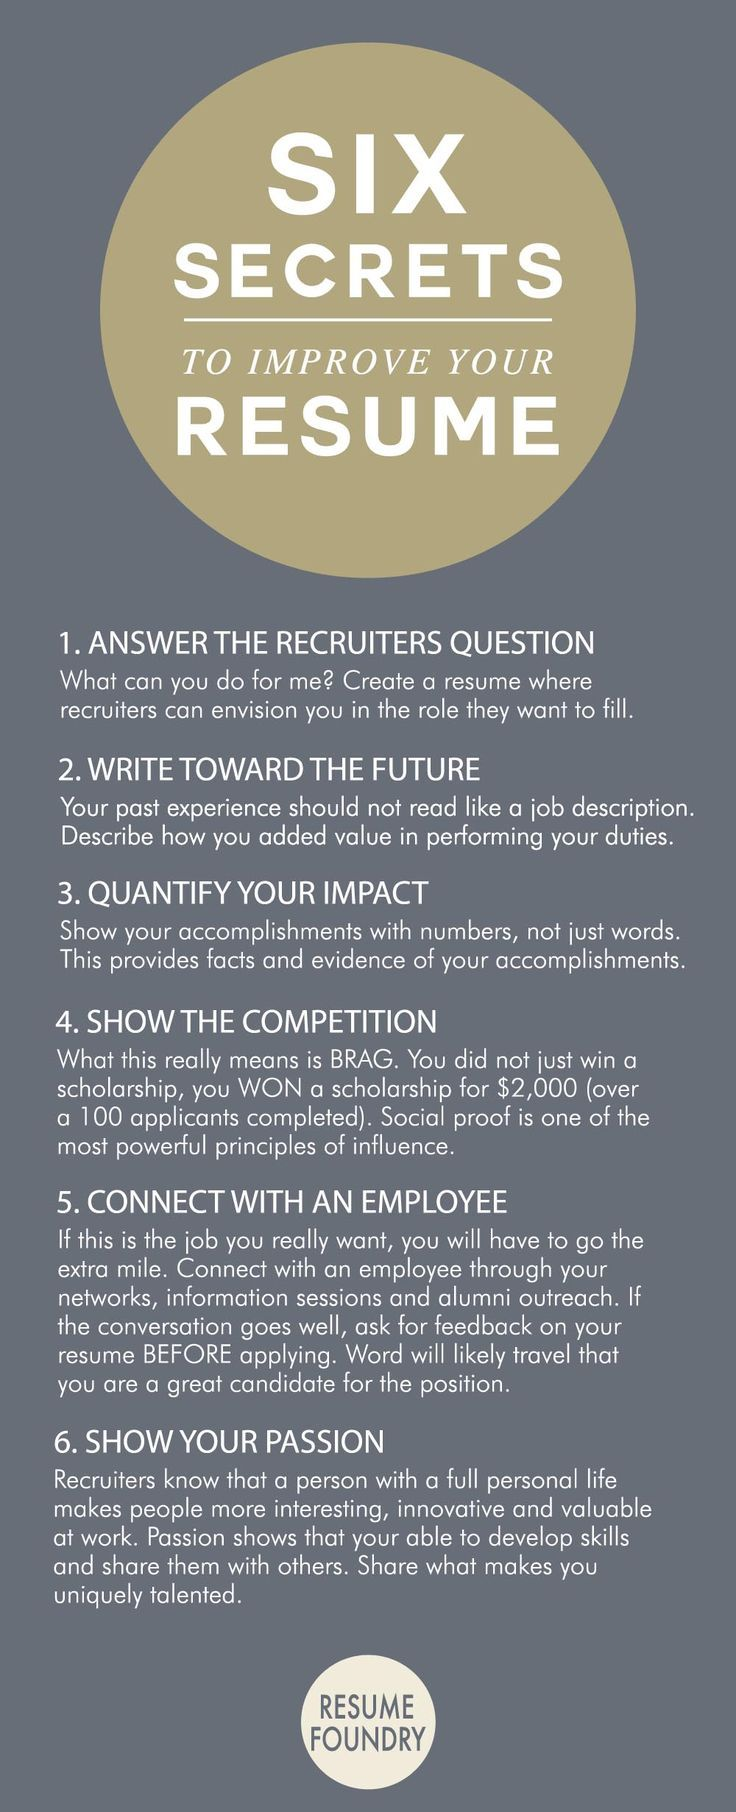 Six amazing secrets to improve your resume.  // Career Advice & Ideas